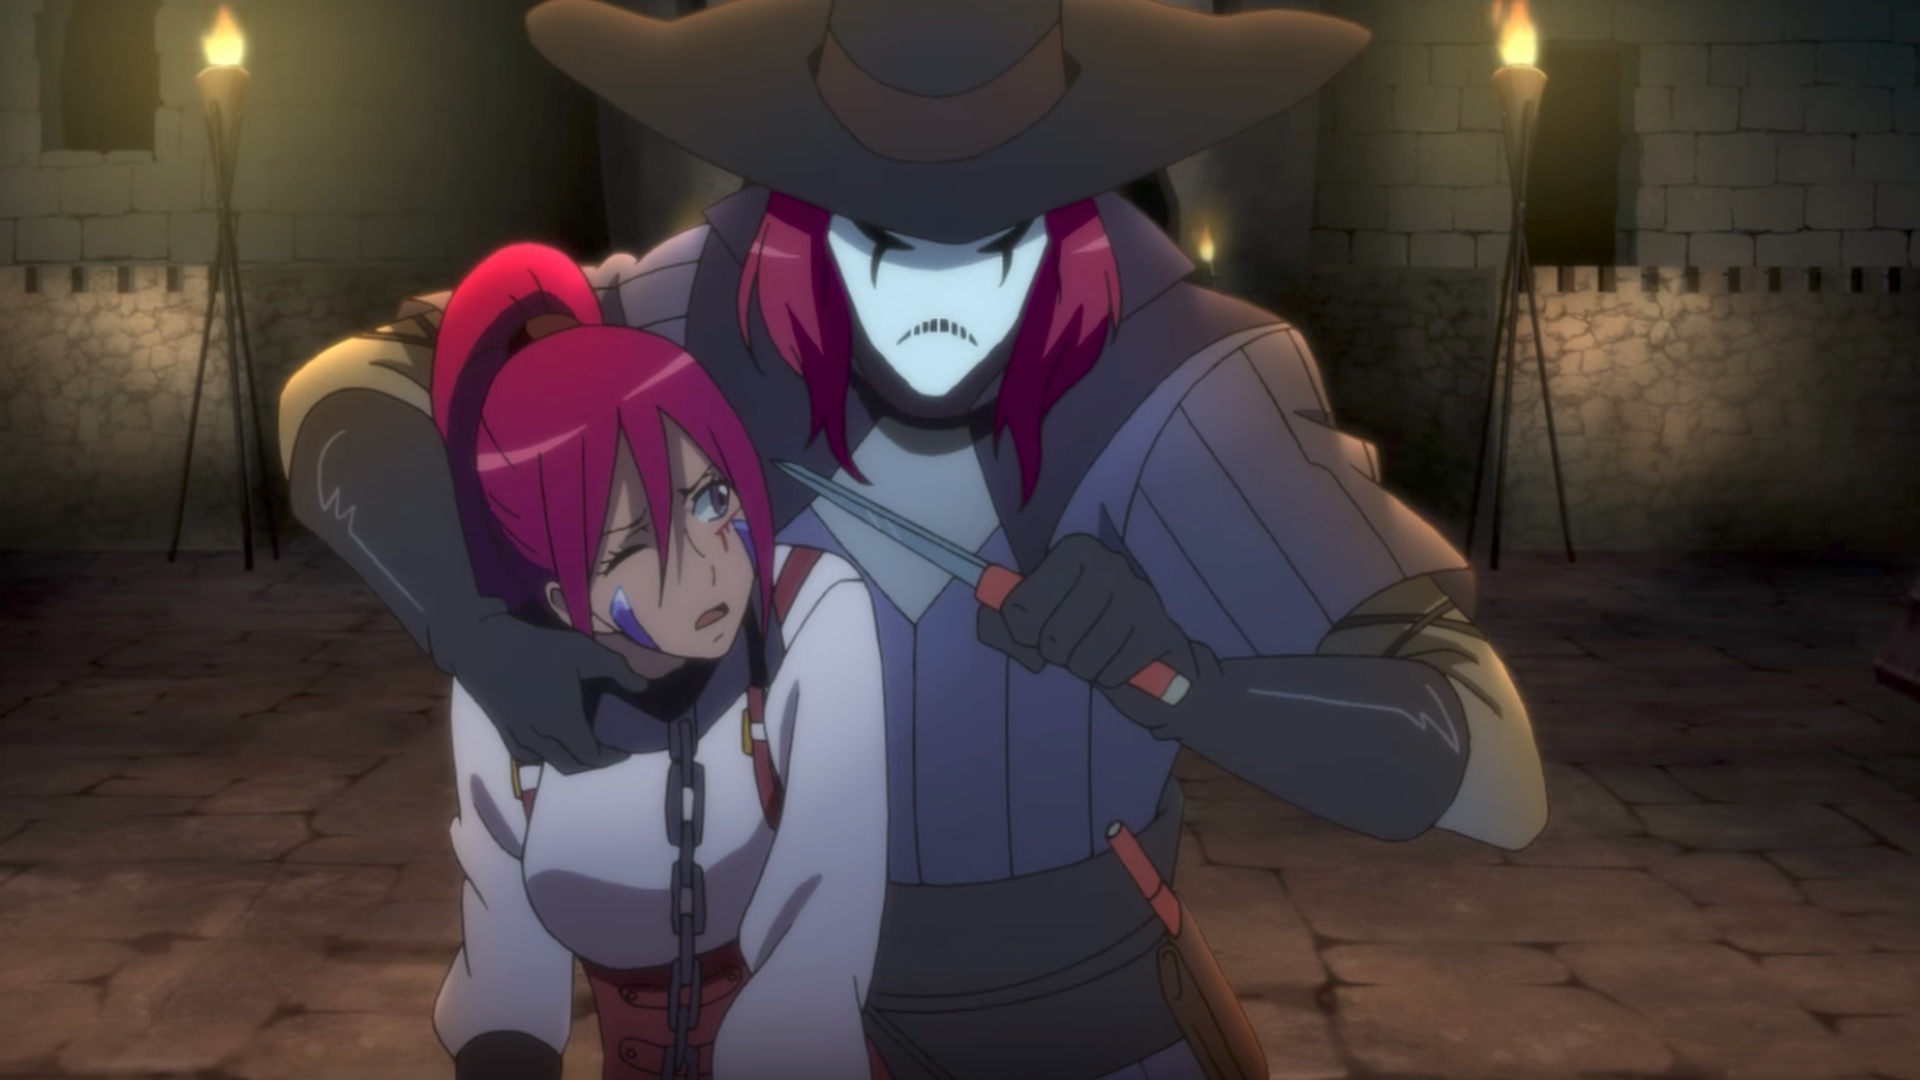 watch a cool independently produced dark fantasy anime series indigo